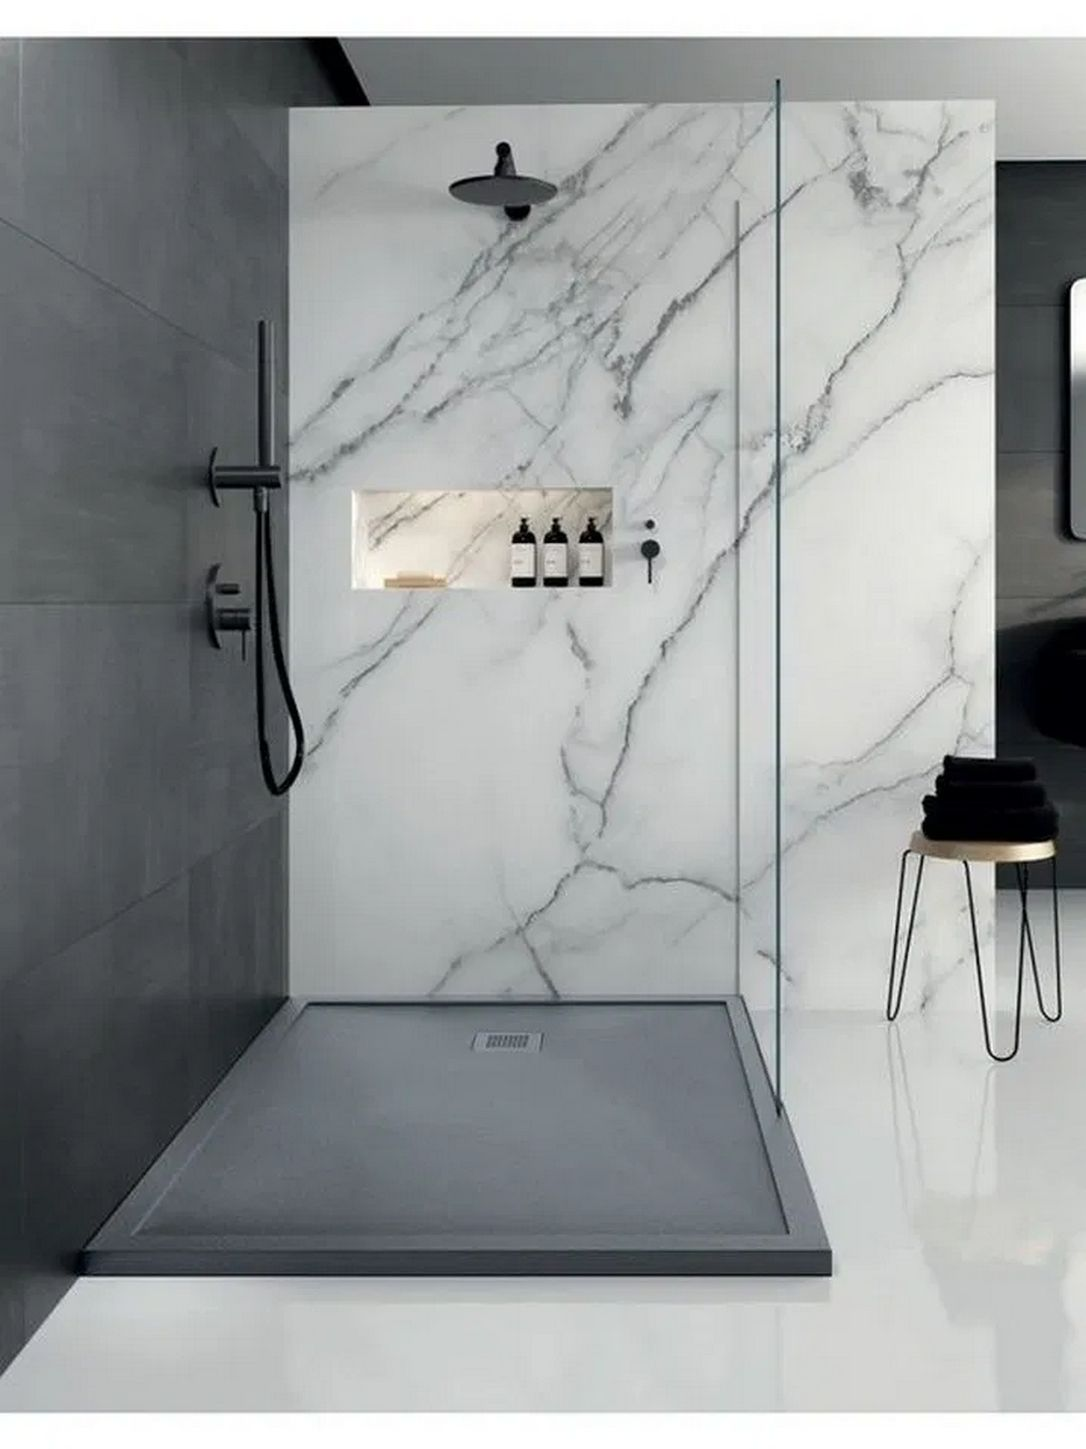 ✔70 inspiring shower tray for your bathroom renovation 63 #bathroomremodelideas #bathroomideas #bathroomremodeling #bathroomdecor #bathroomdecoration #bathroomideasonasmallbudget #bathroomremodelonabudget #bathroomshowers #bathroomshowerdesigns #bathroomideasonabudget #bathroomrenovationideas #bathroomrenovation #bathroomshowernew #bathroomshowercorner #bathroomdecorationideas #bathroomshowerwalkin #bathroomremodel #bathroomideassmallspace #bathroomdesignideas #bathroomdecorideas